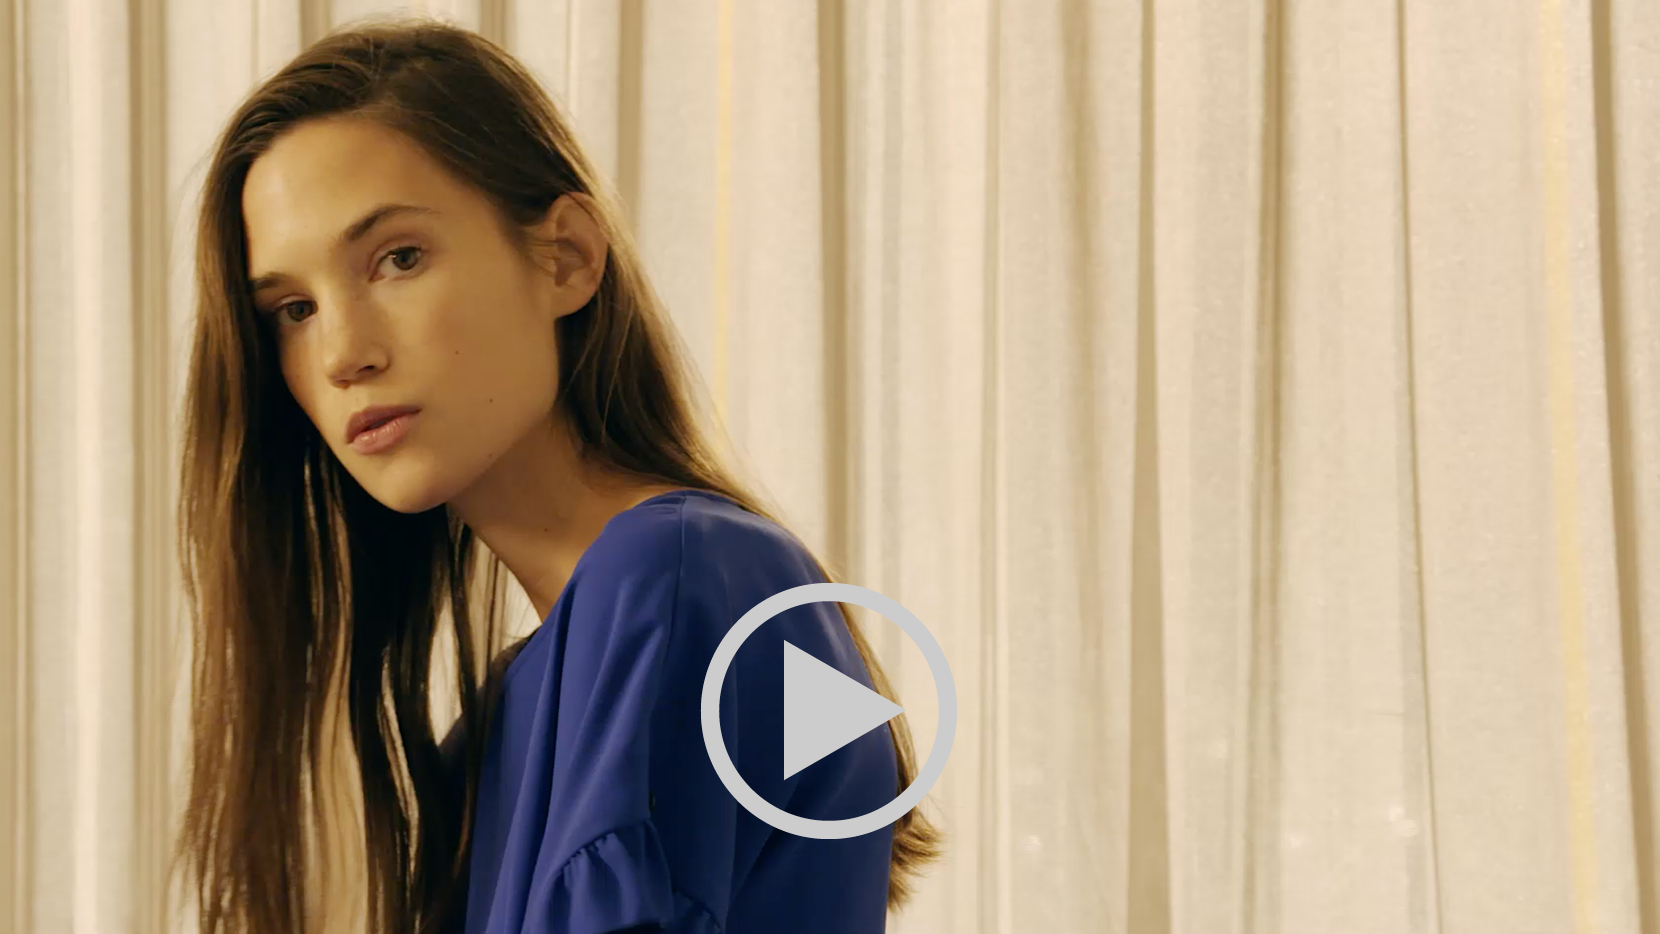 PB-FW16-video-940x530-editorial03.jpg